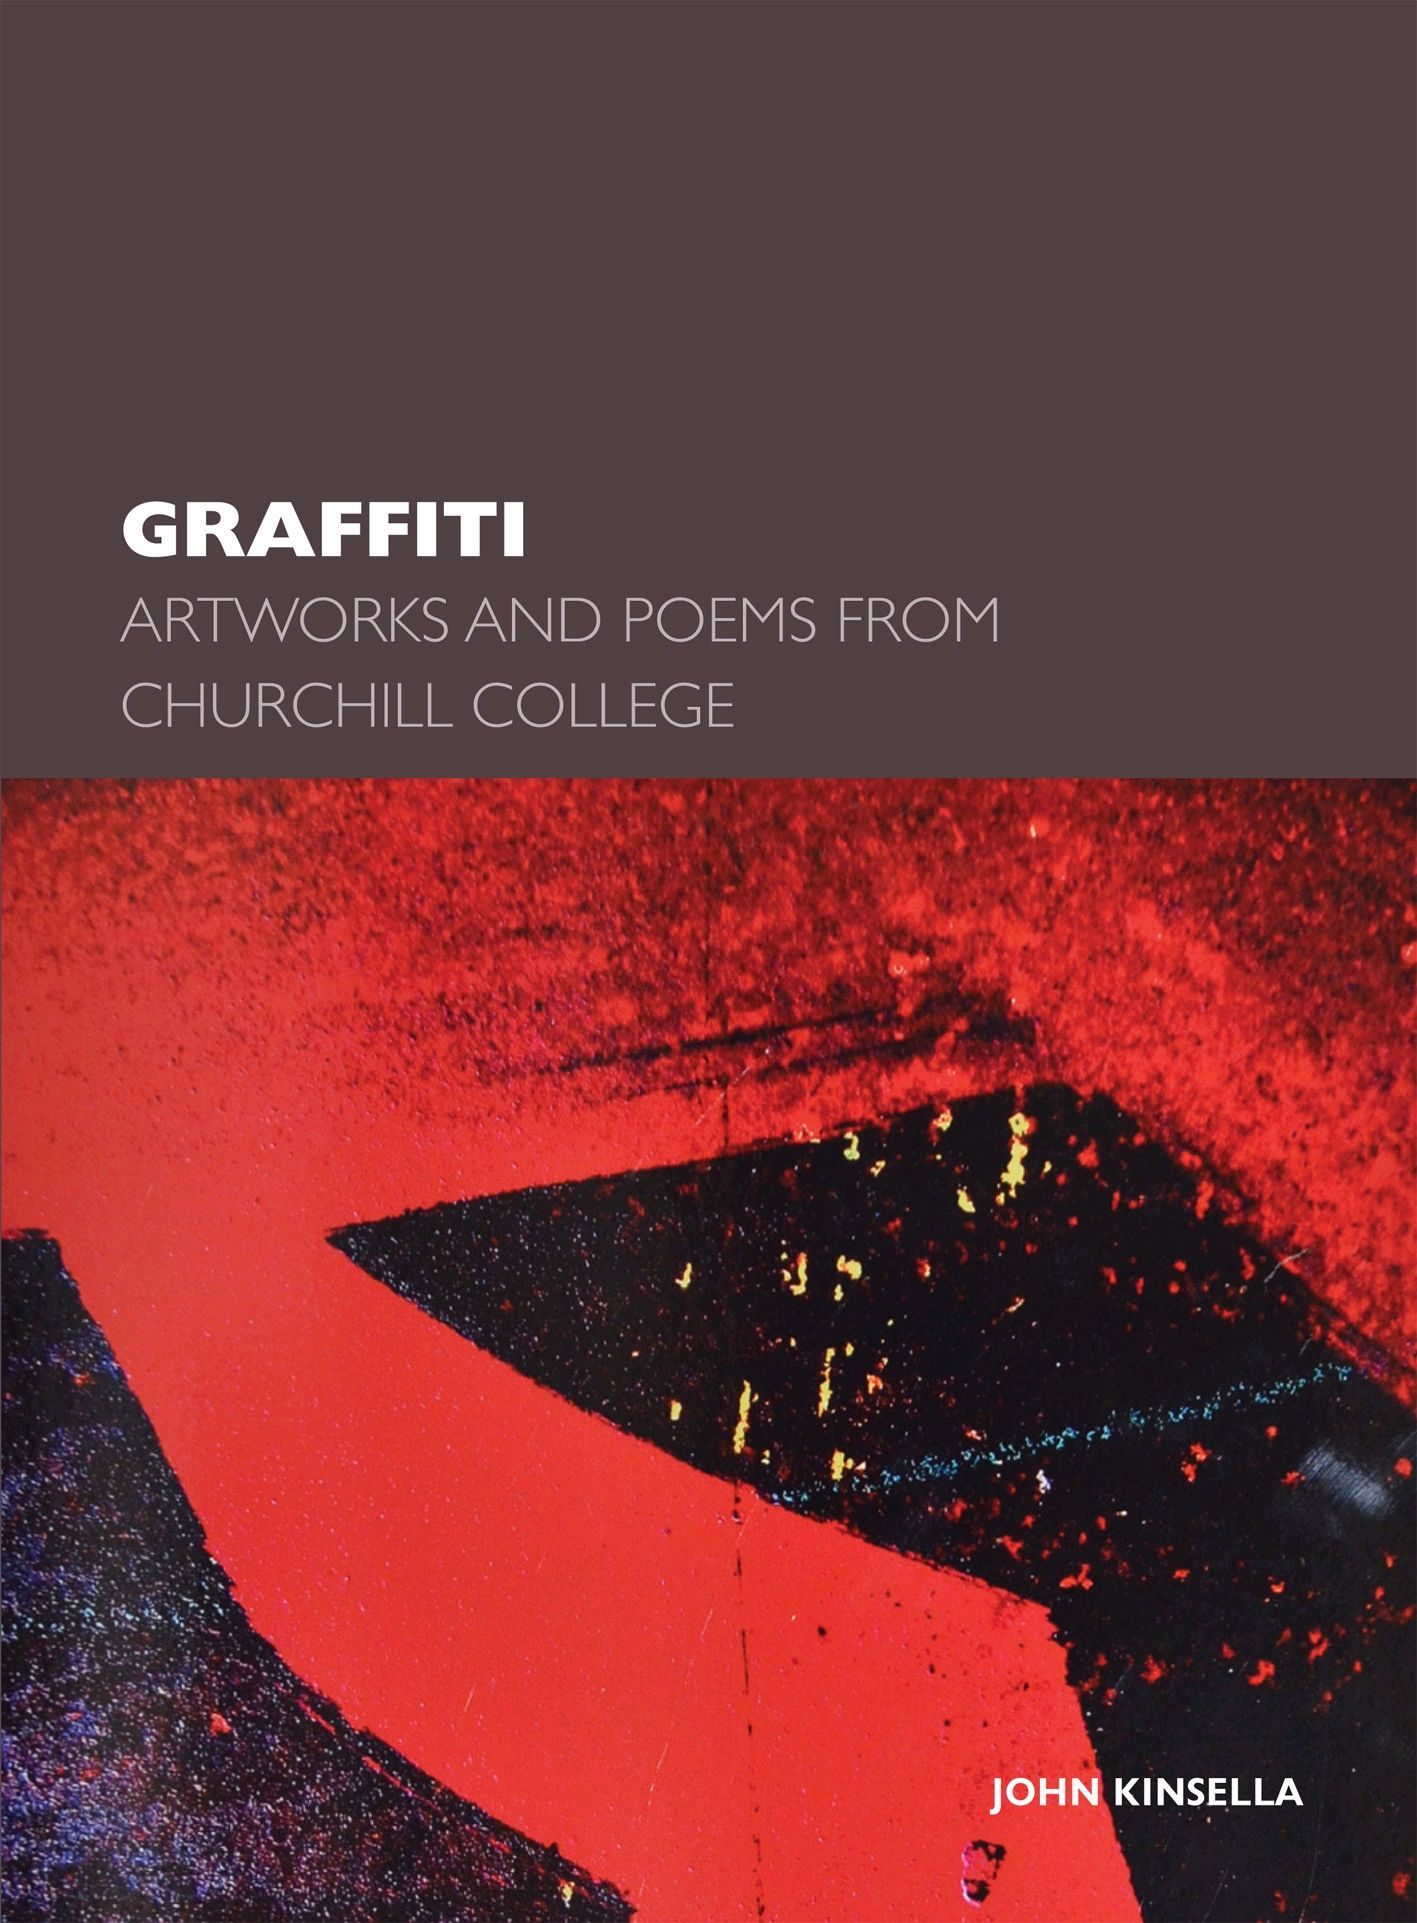 graffiti artworks and poems from churchill college